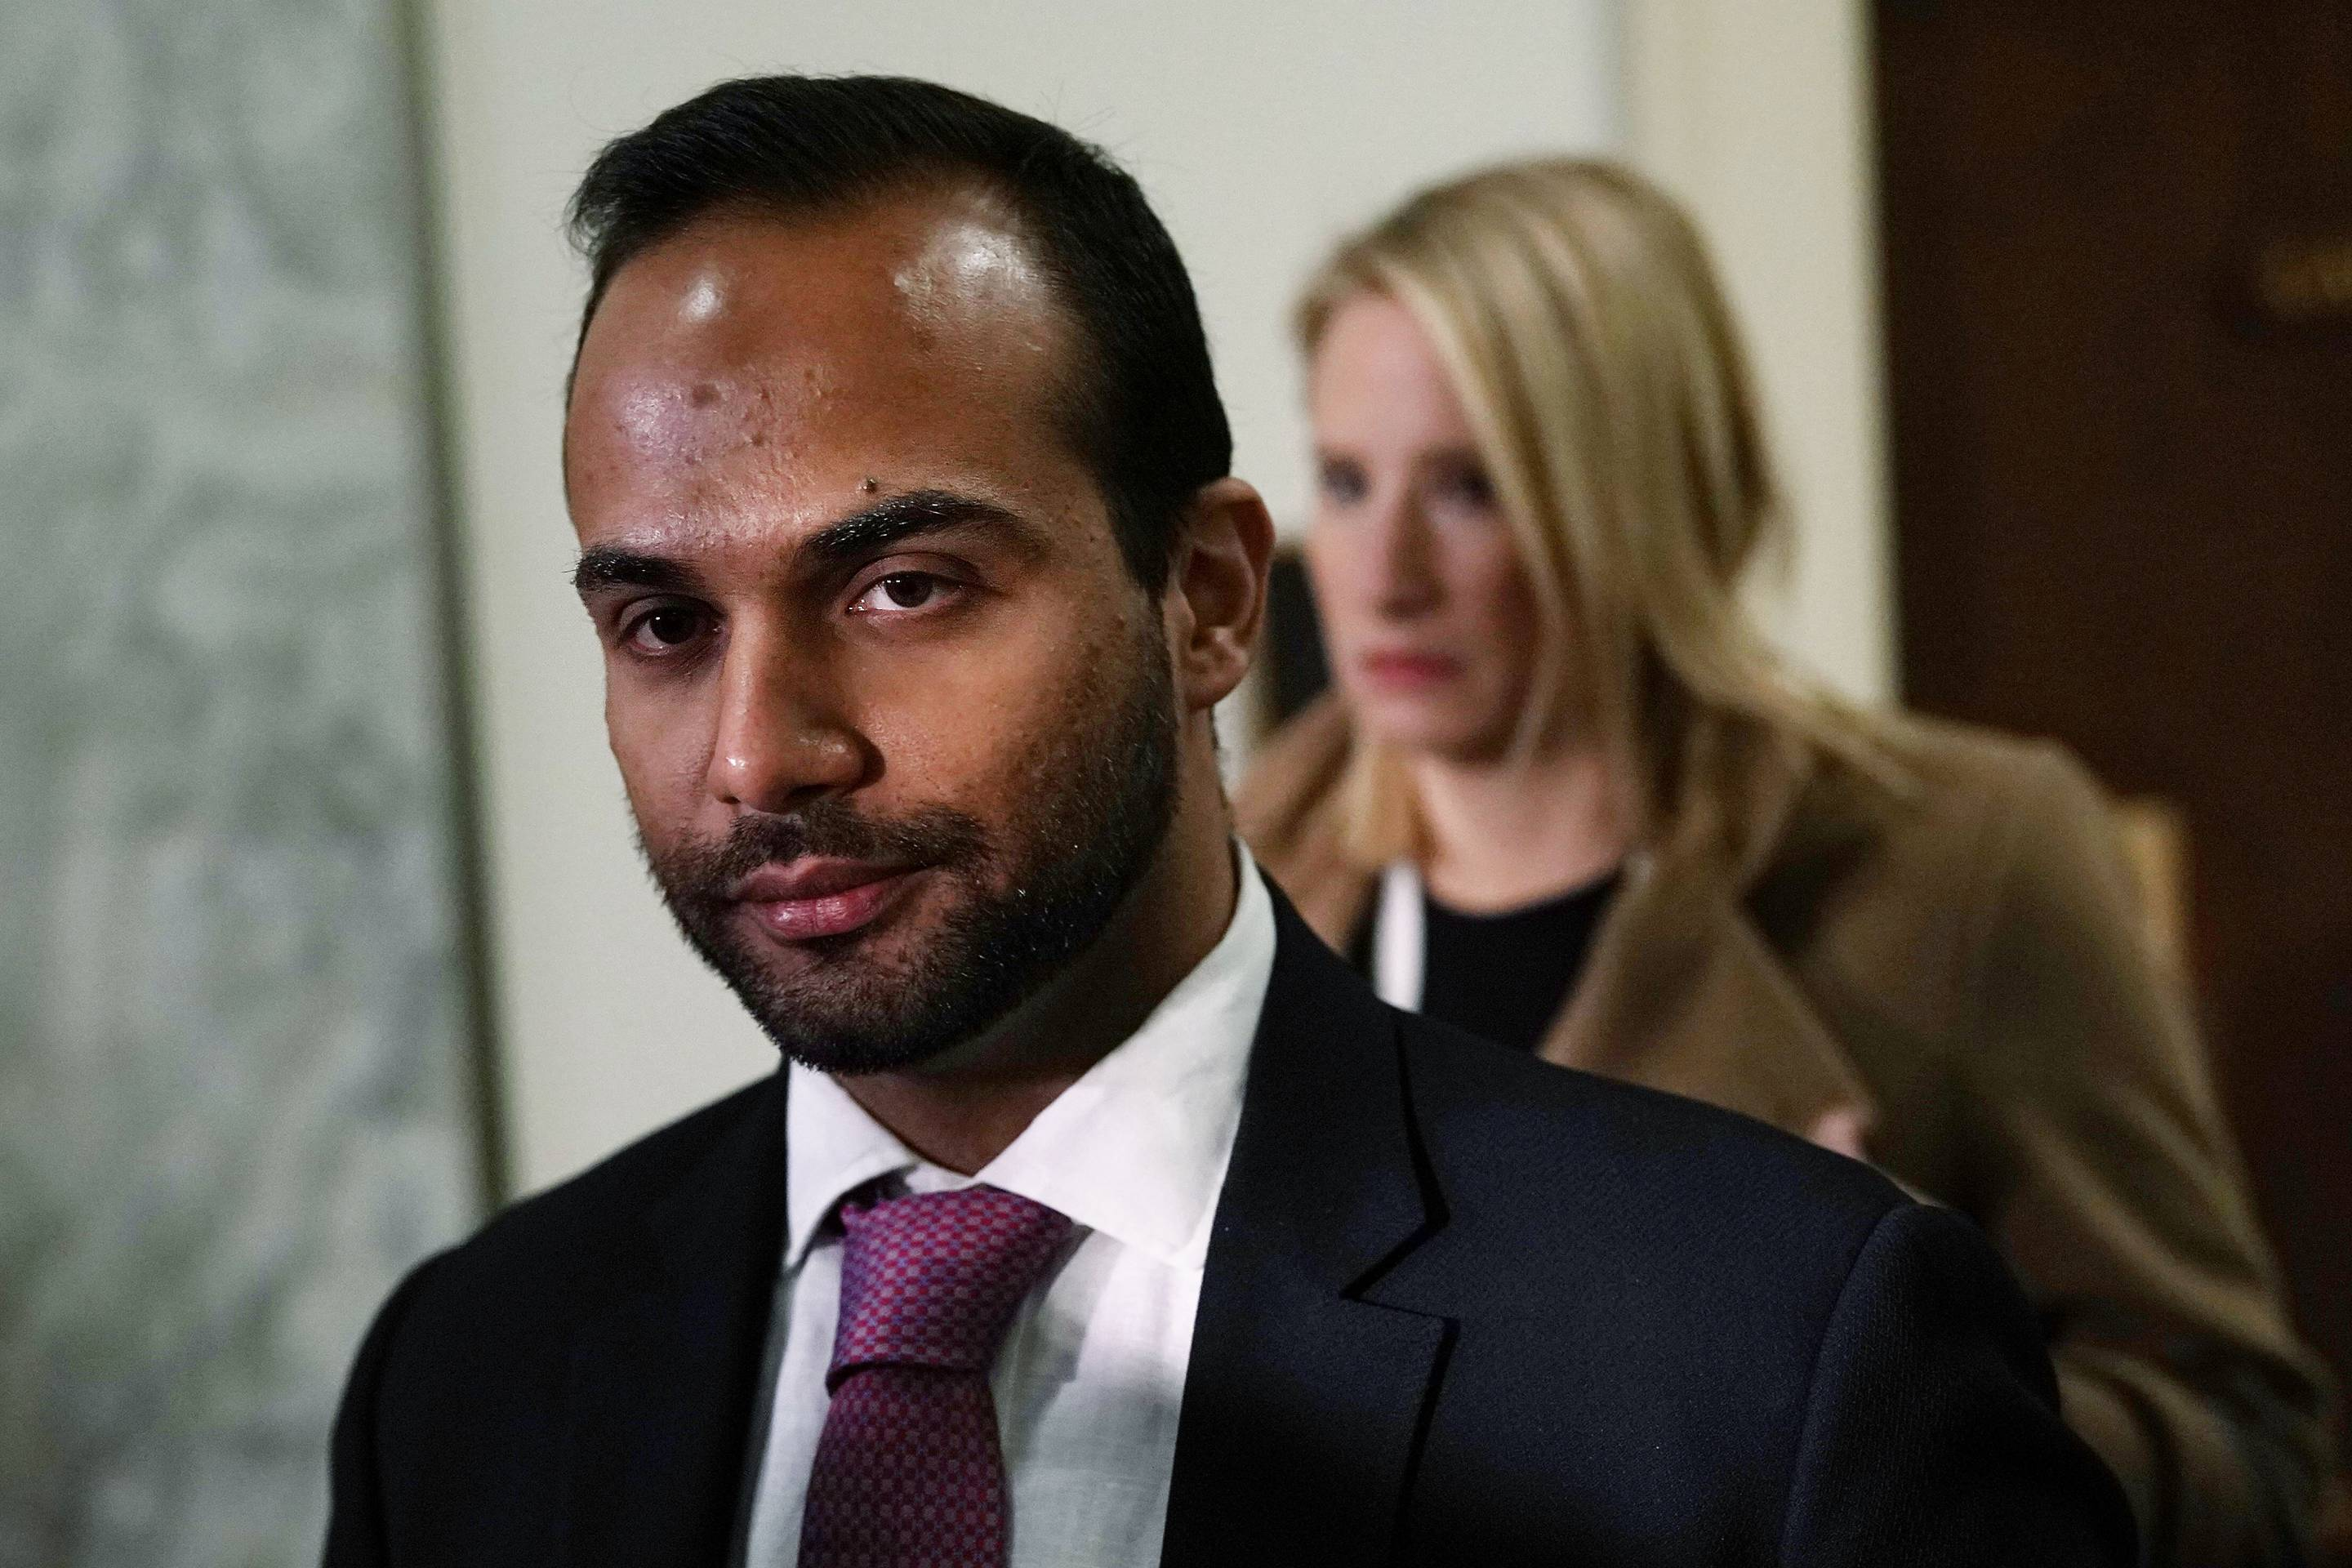 George Papadopoulos Testifies To Closed Meeting Of House Judiciary And Oversight Committee